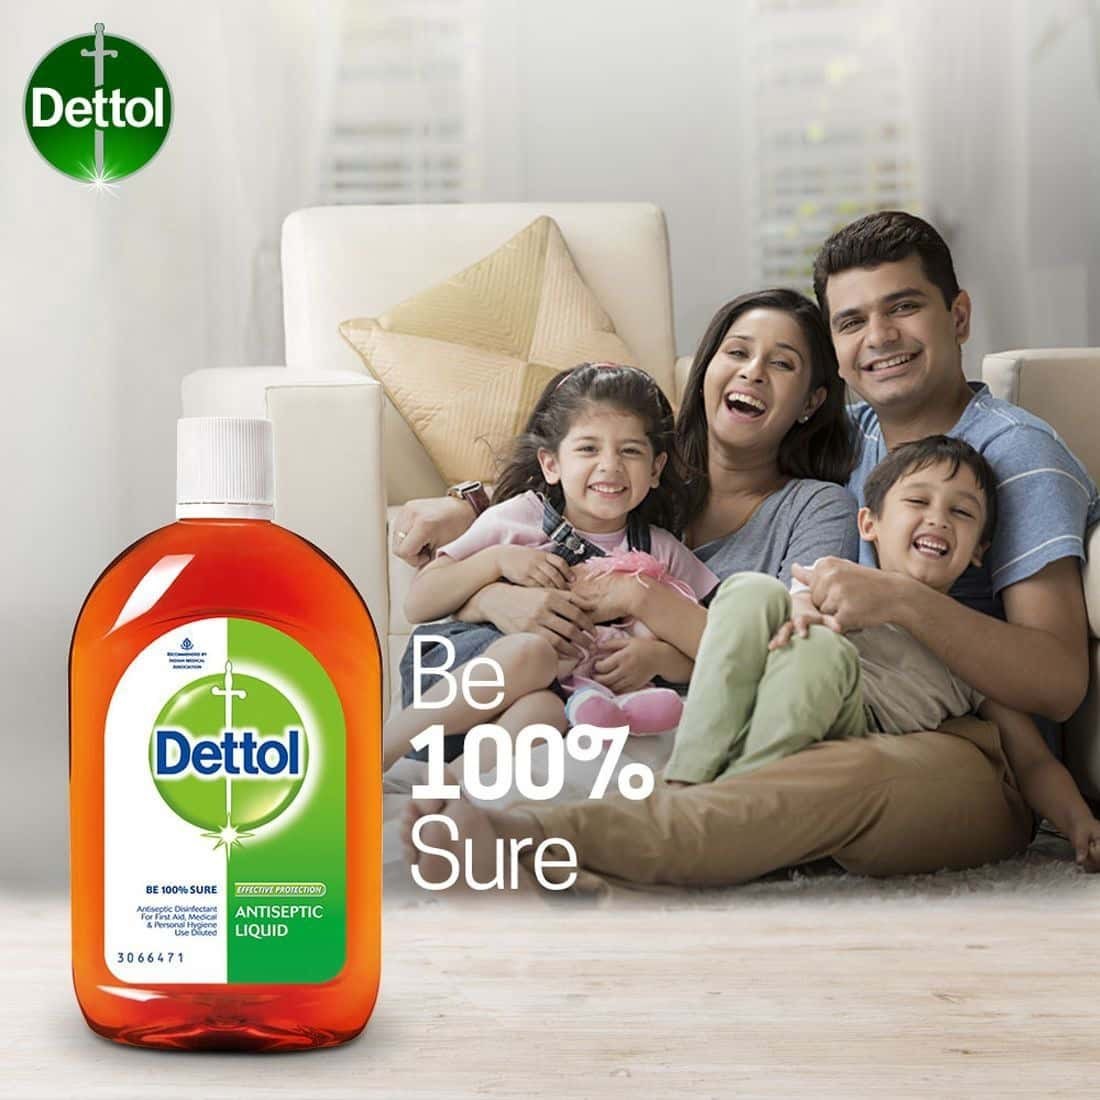 Dettol Antiseptic Liquid Bottle Of 550 Ml